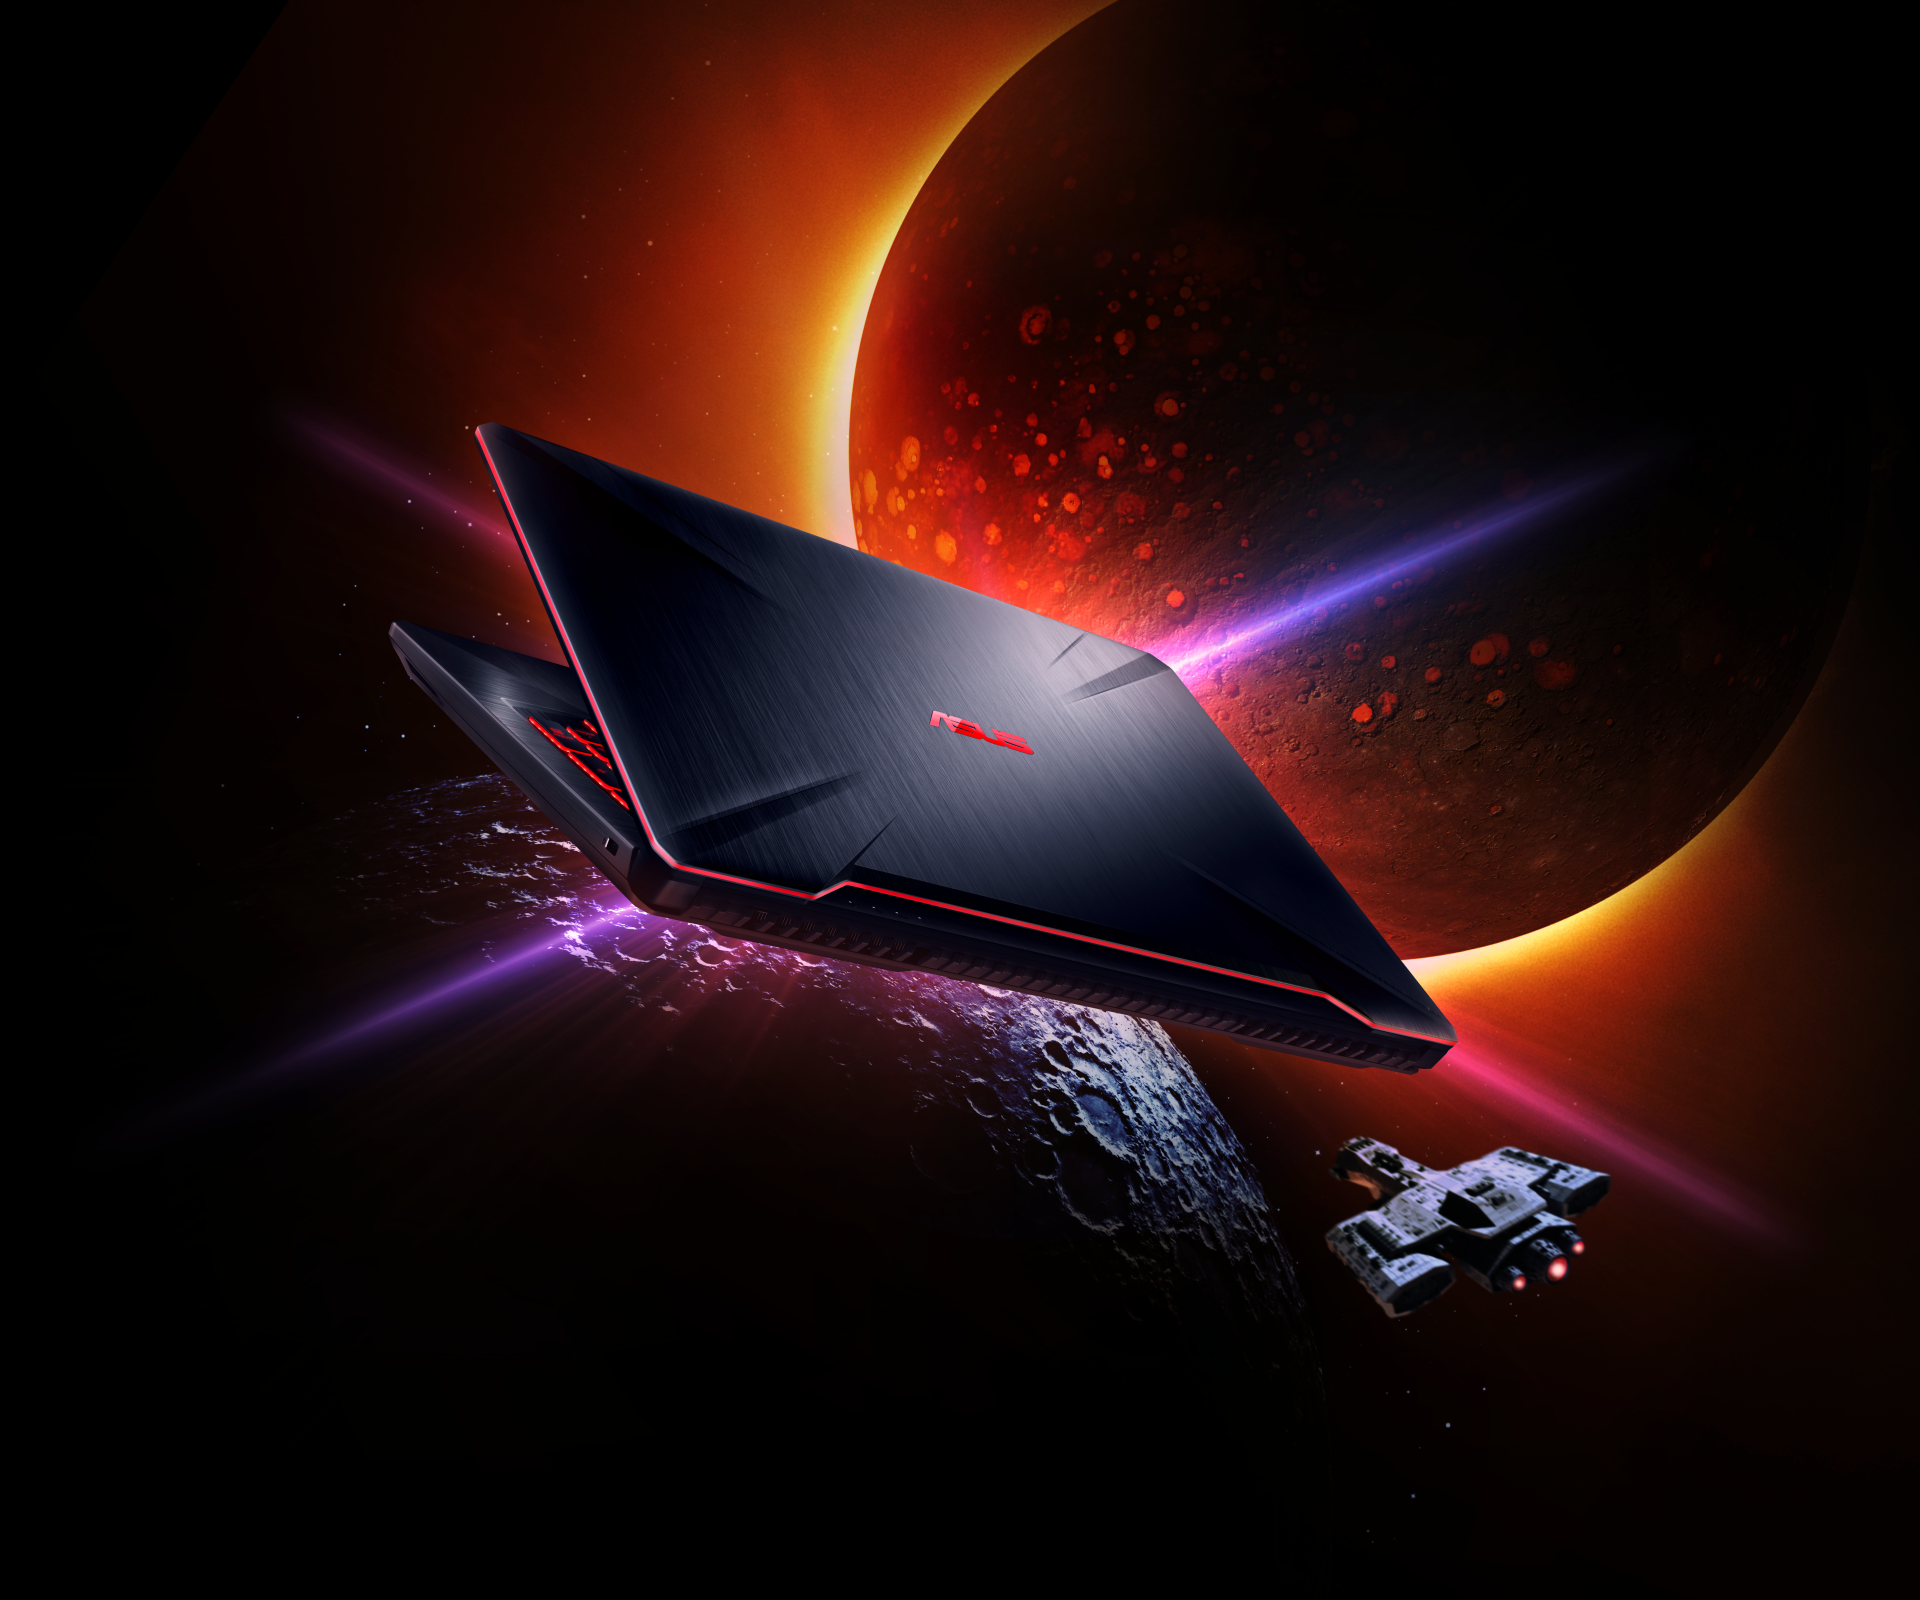 Debiut serii ASUS TUF Gaming – model FX504